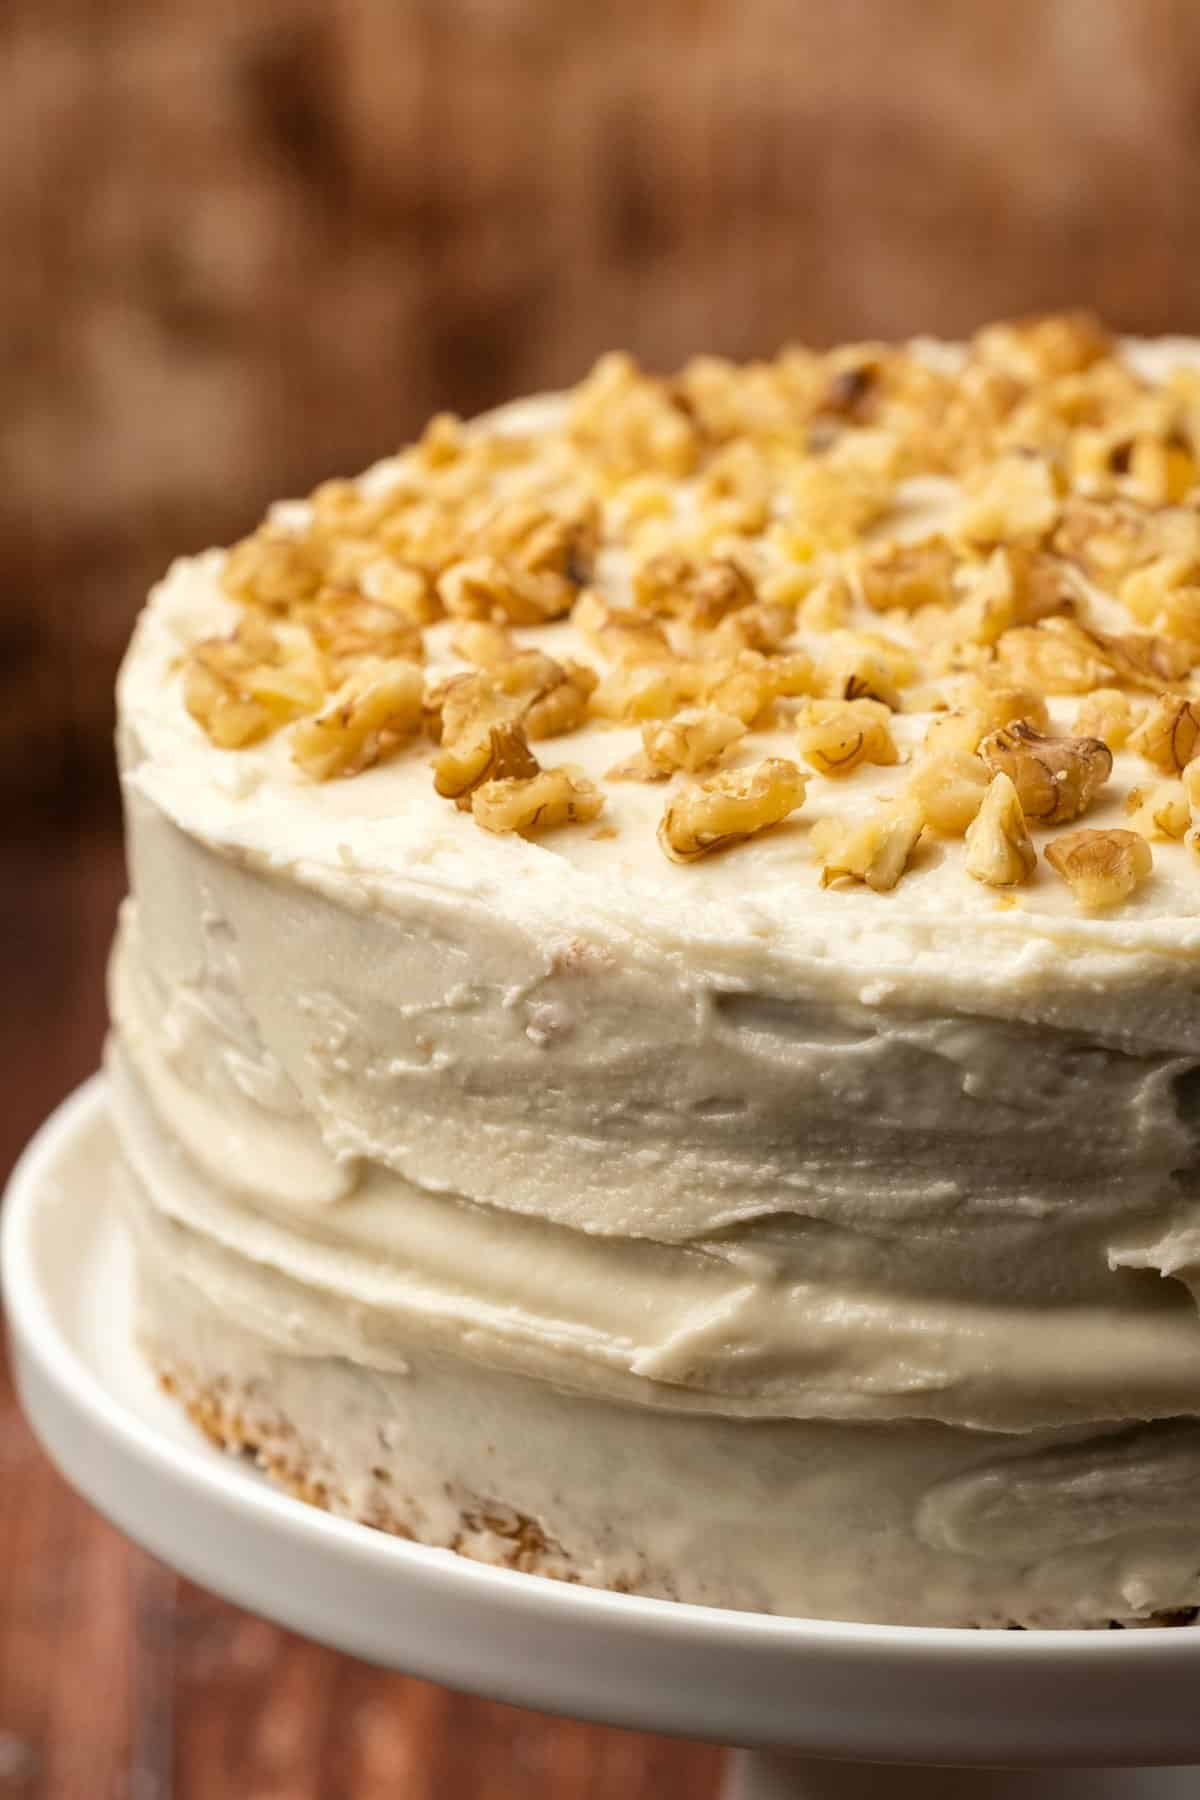 Vegan carrot cake topped with walnuts on a white cake stand.